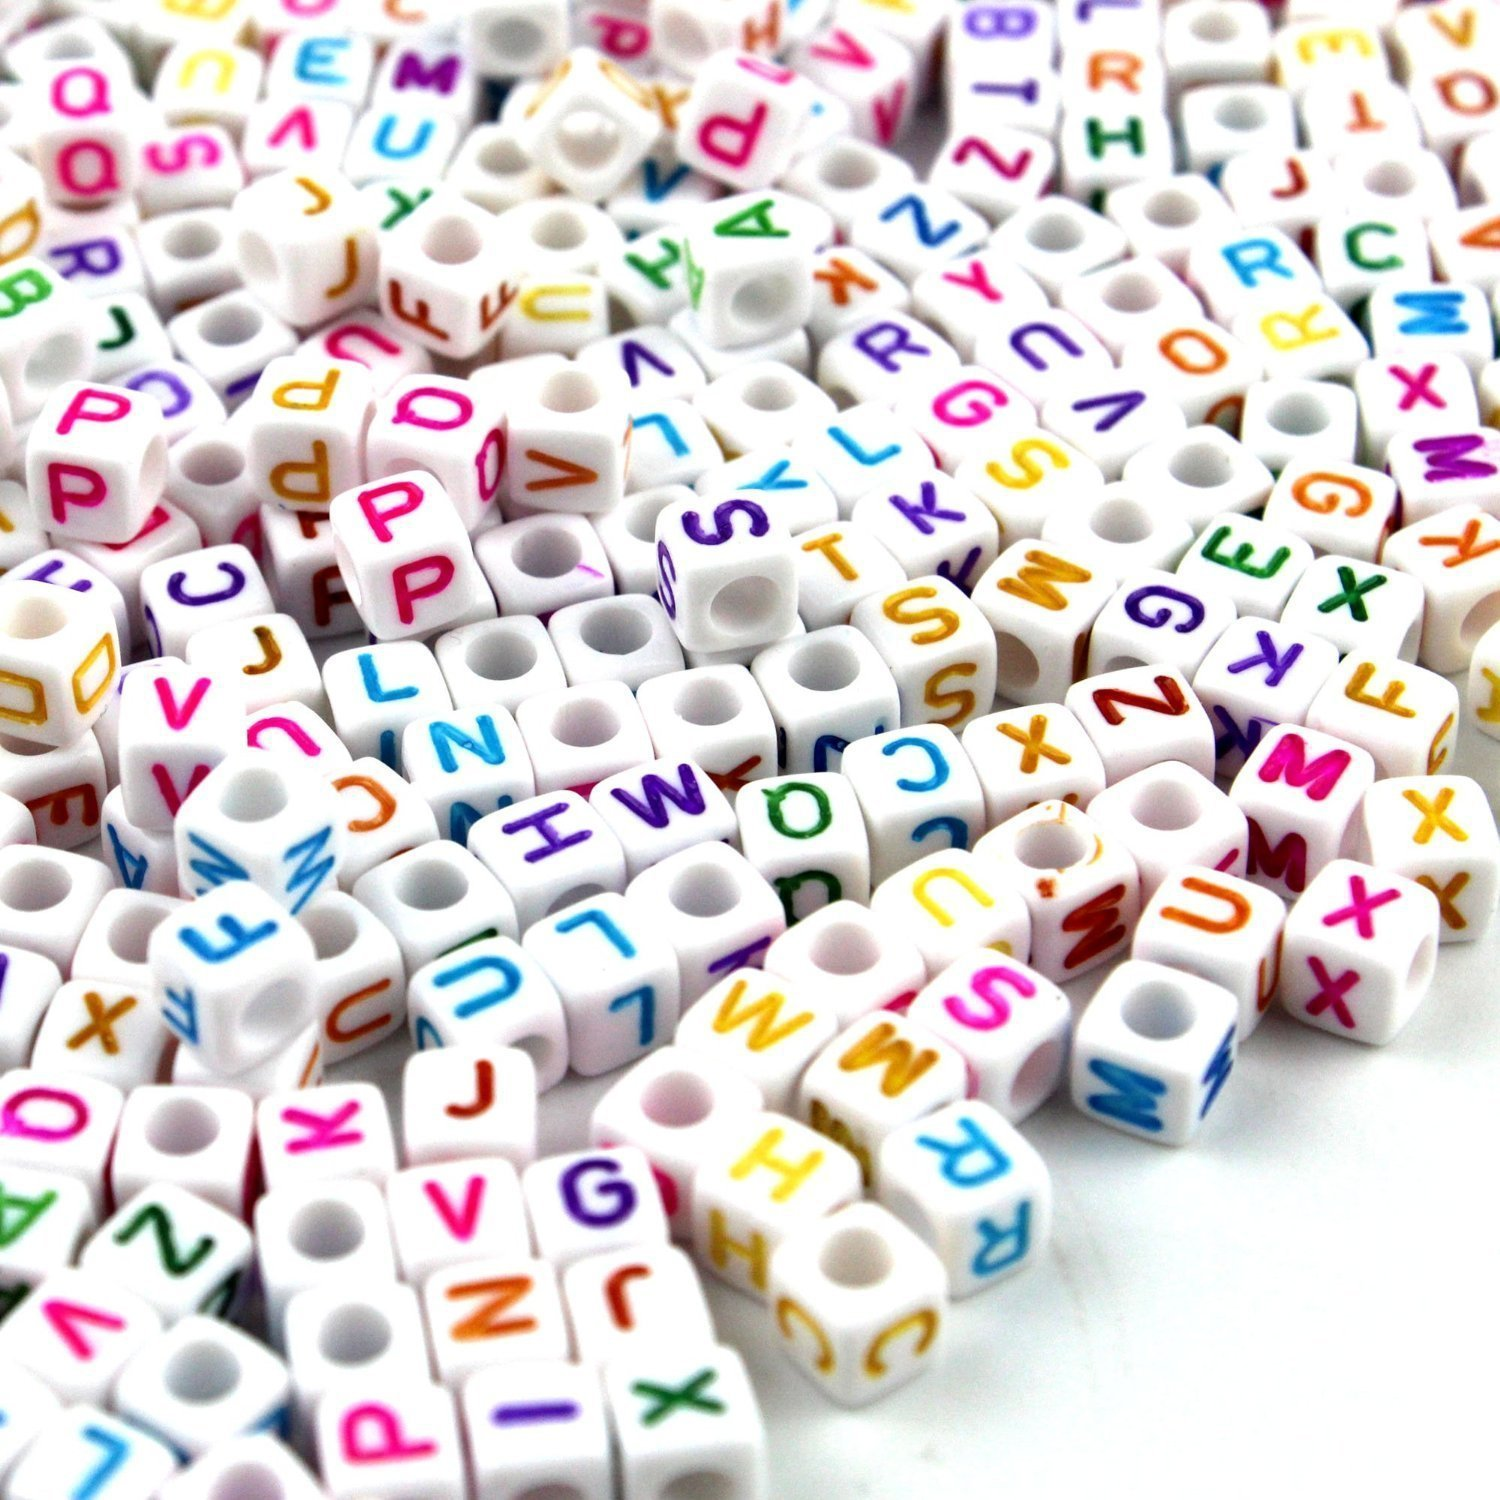 500PCS Size 12mm Acrylic Alphabet Letter''A-Z'' Cube Beads for Jewelry Making, Bracelets, Necklaces, Key Chains and Kids Jewelry by YURROAD